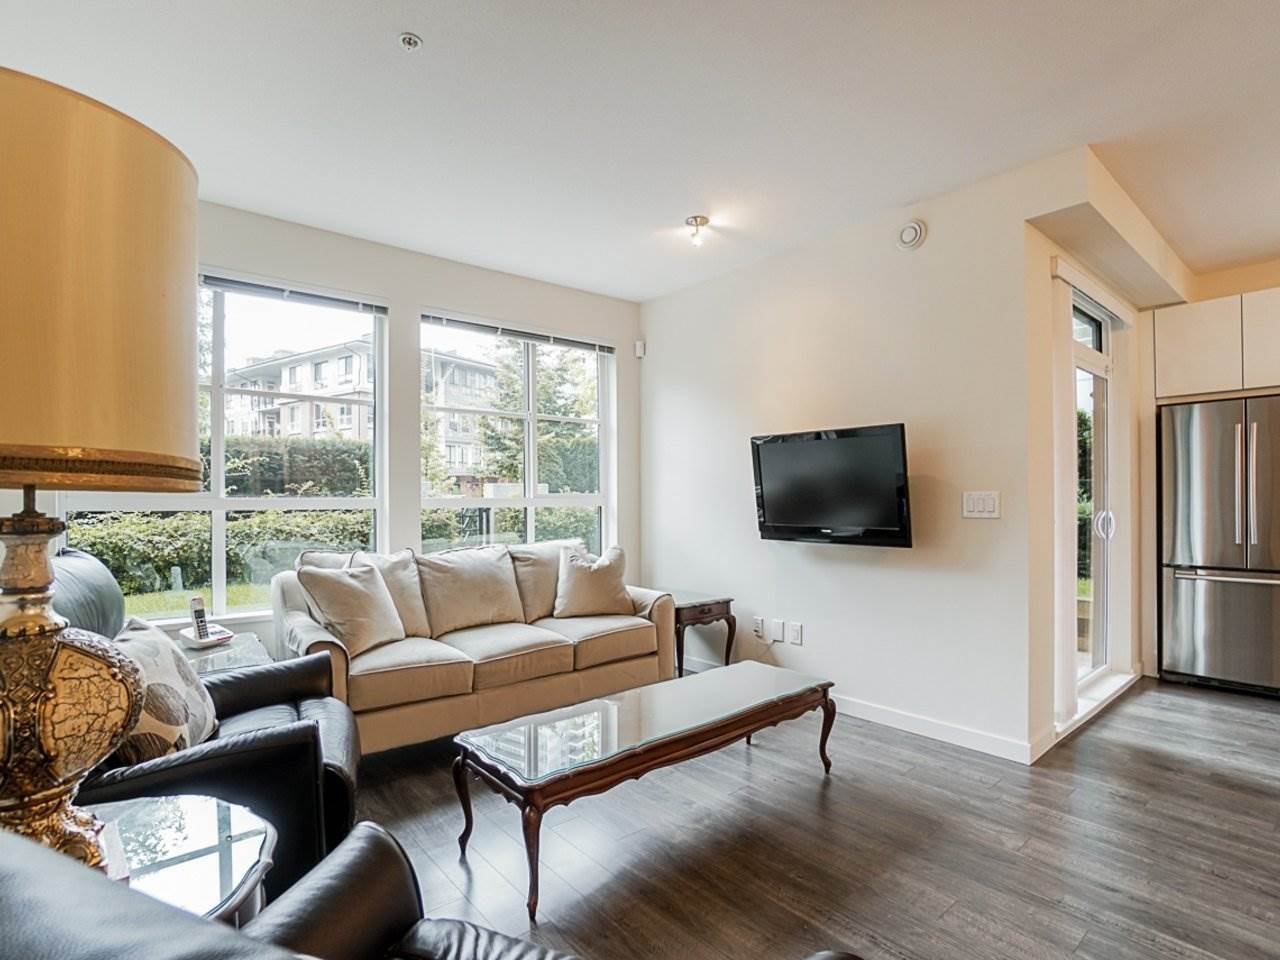 Photo 8: Photos: 108 1151 WINDSOR Mews in Coquitlam: New Horizons Condo for sale : MLS®# R2500299